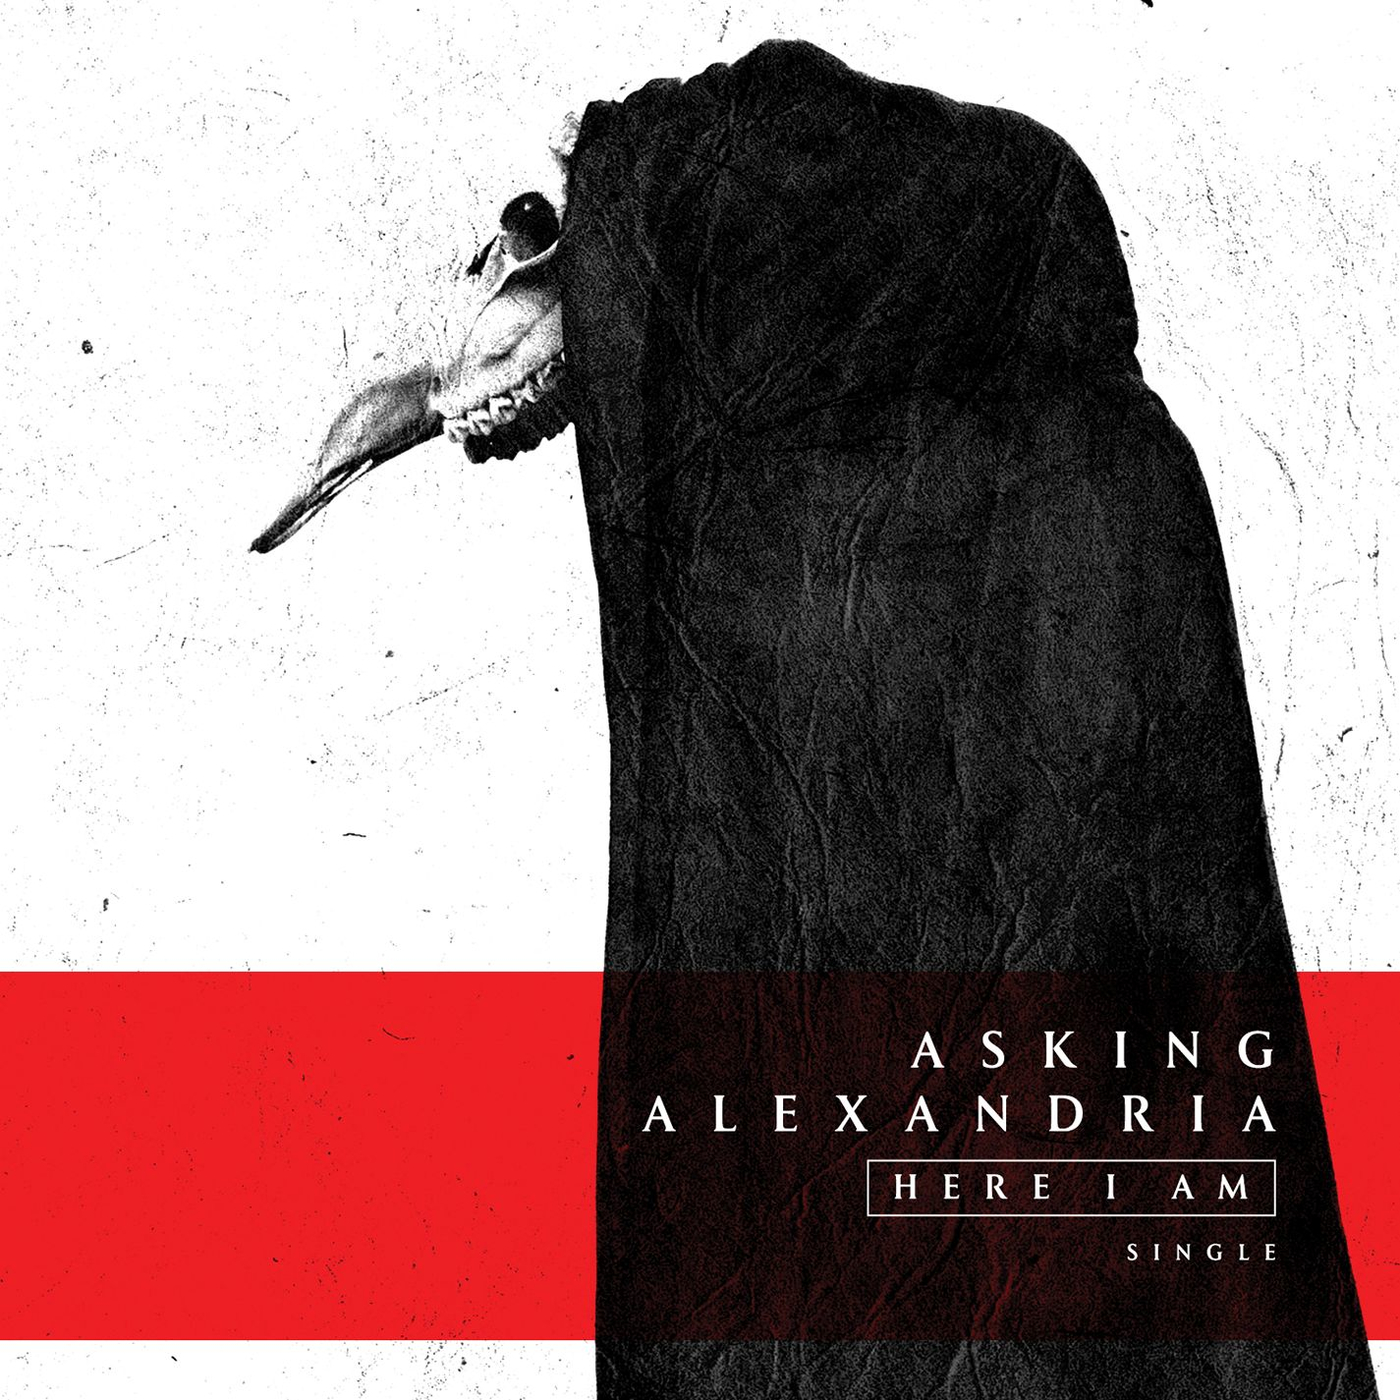 Asking Alexandria - Here I Am [New Song] (2016)